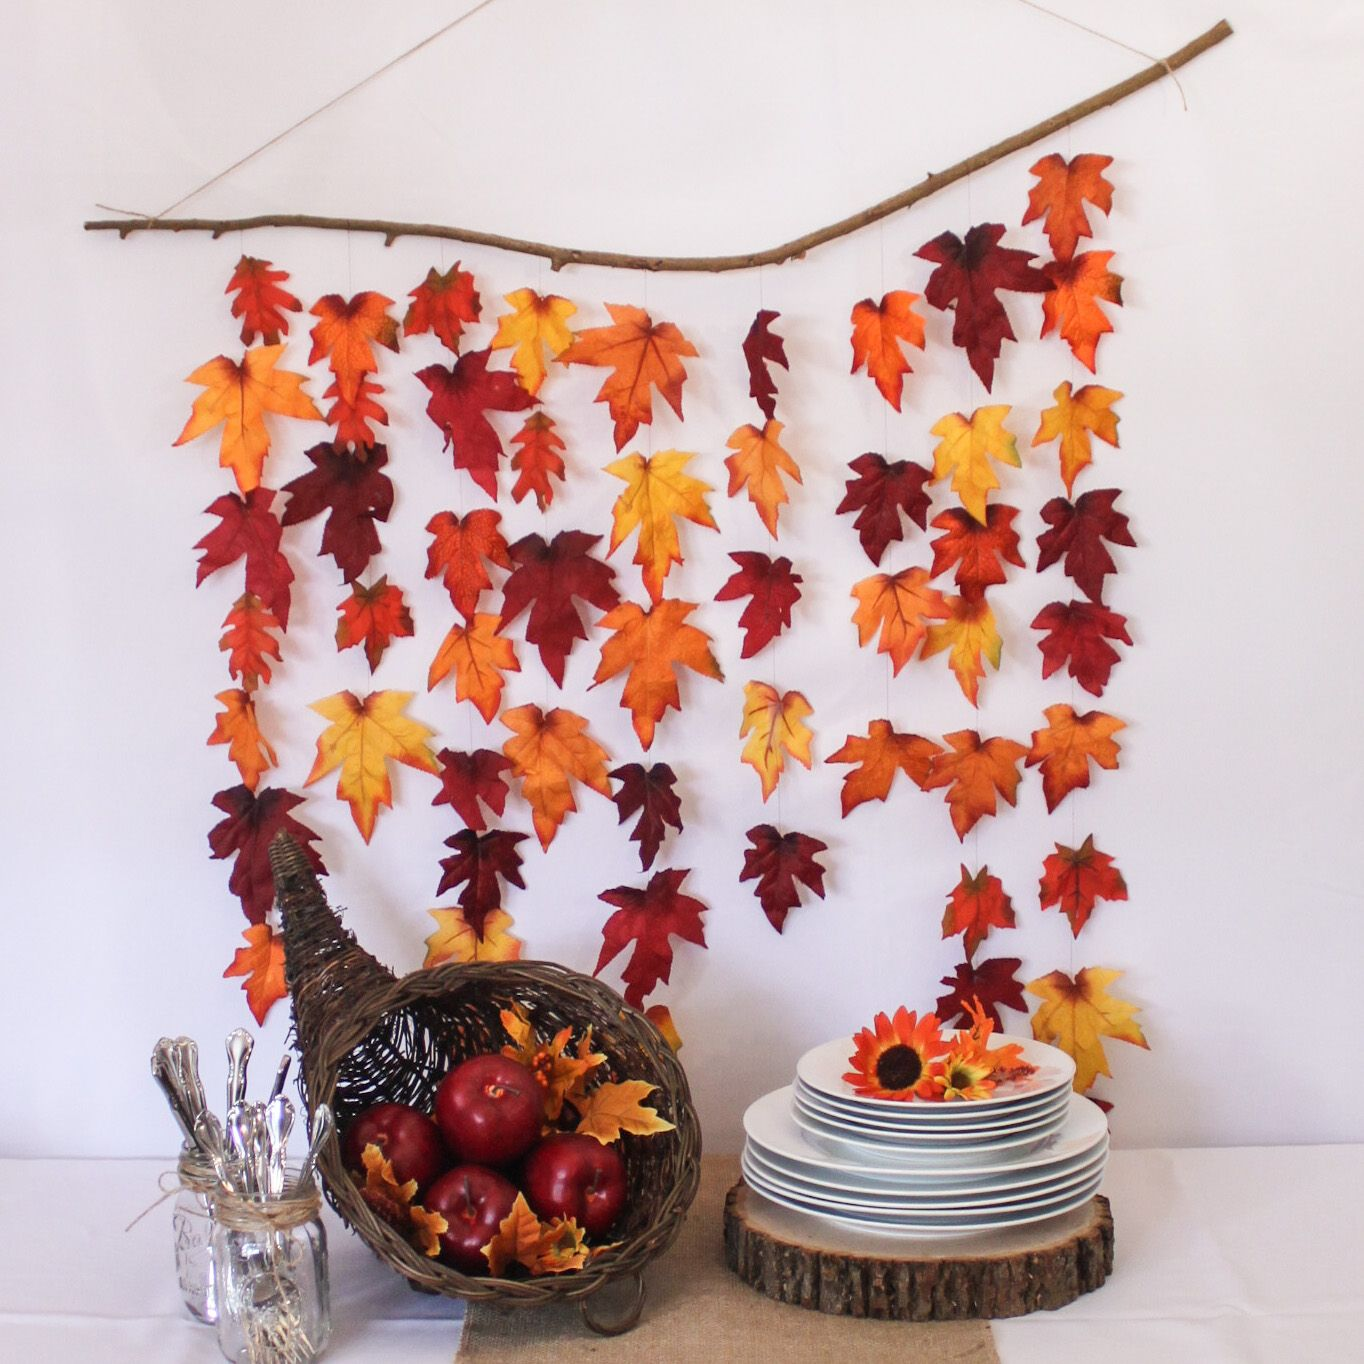 Diy Rustic Autumn Leaf Backdrop Fall Decorations Thanksgiving Crafts Photo Back Drop Dessert Table